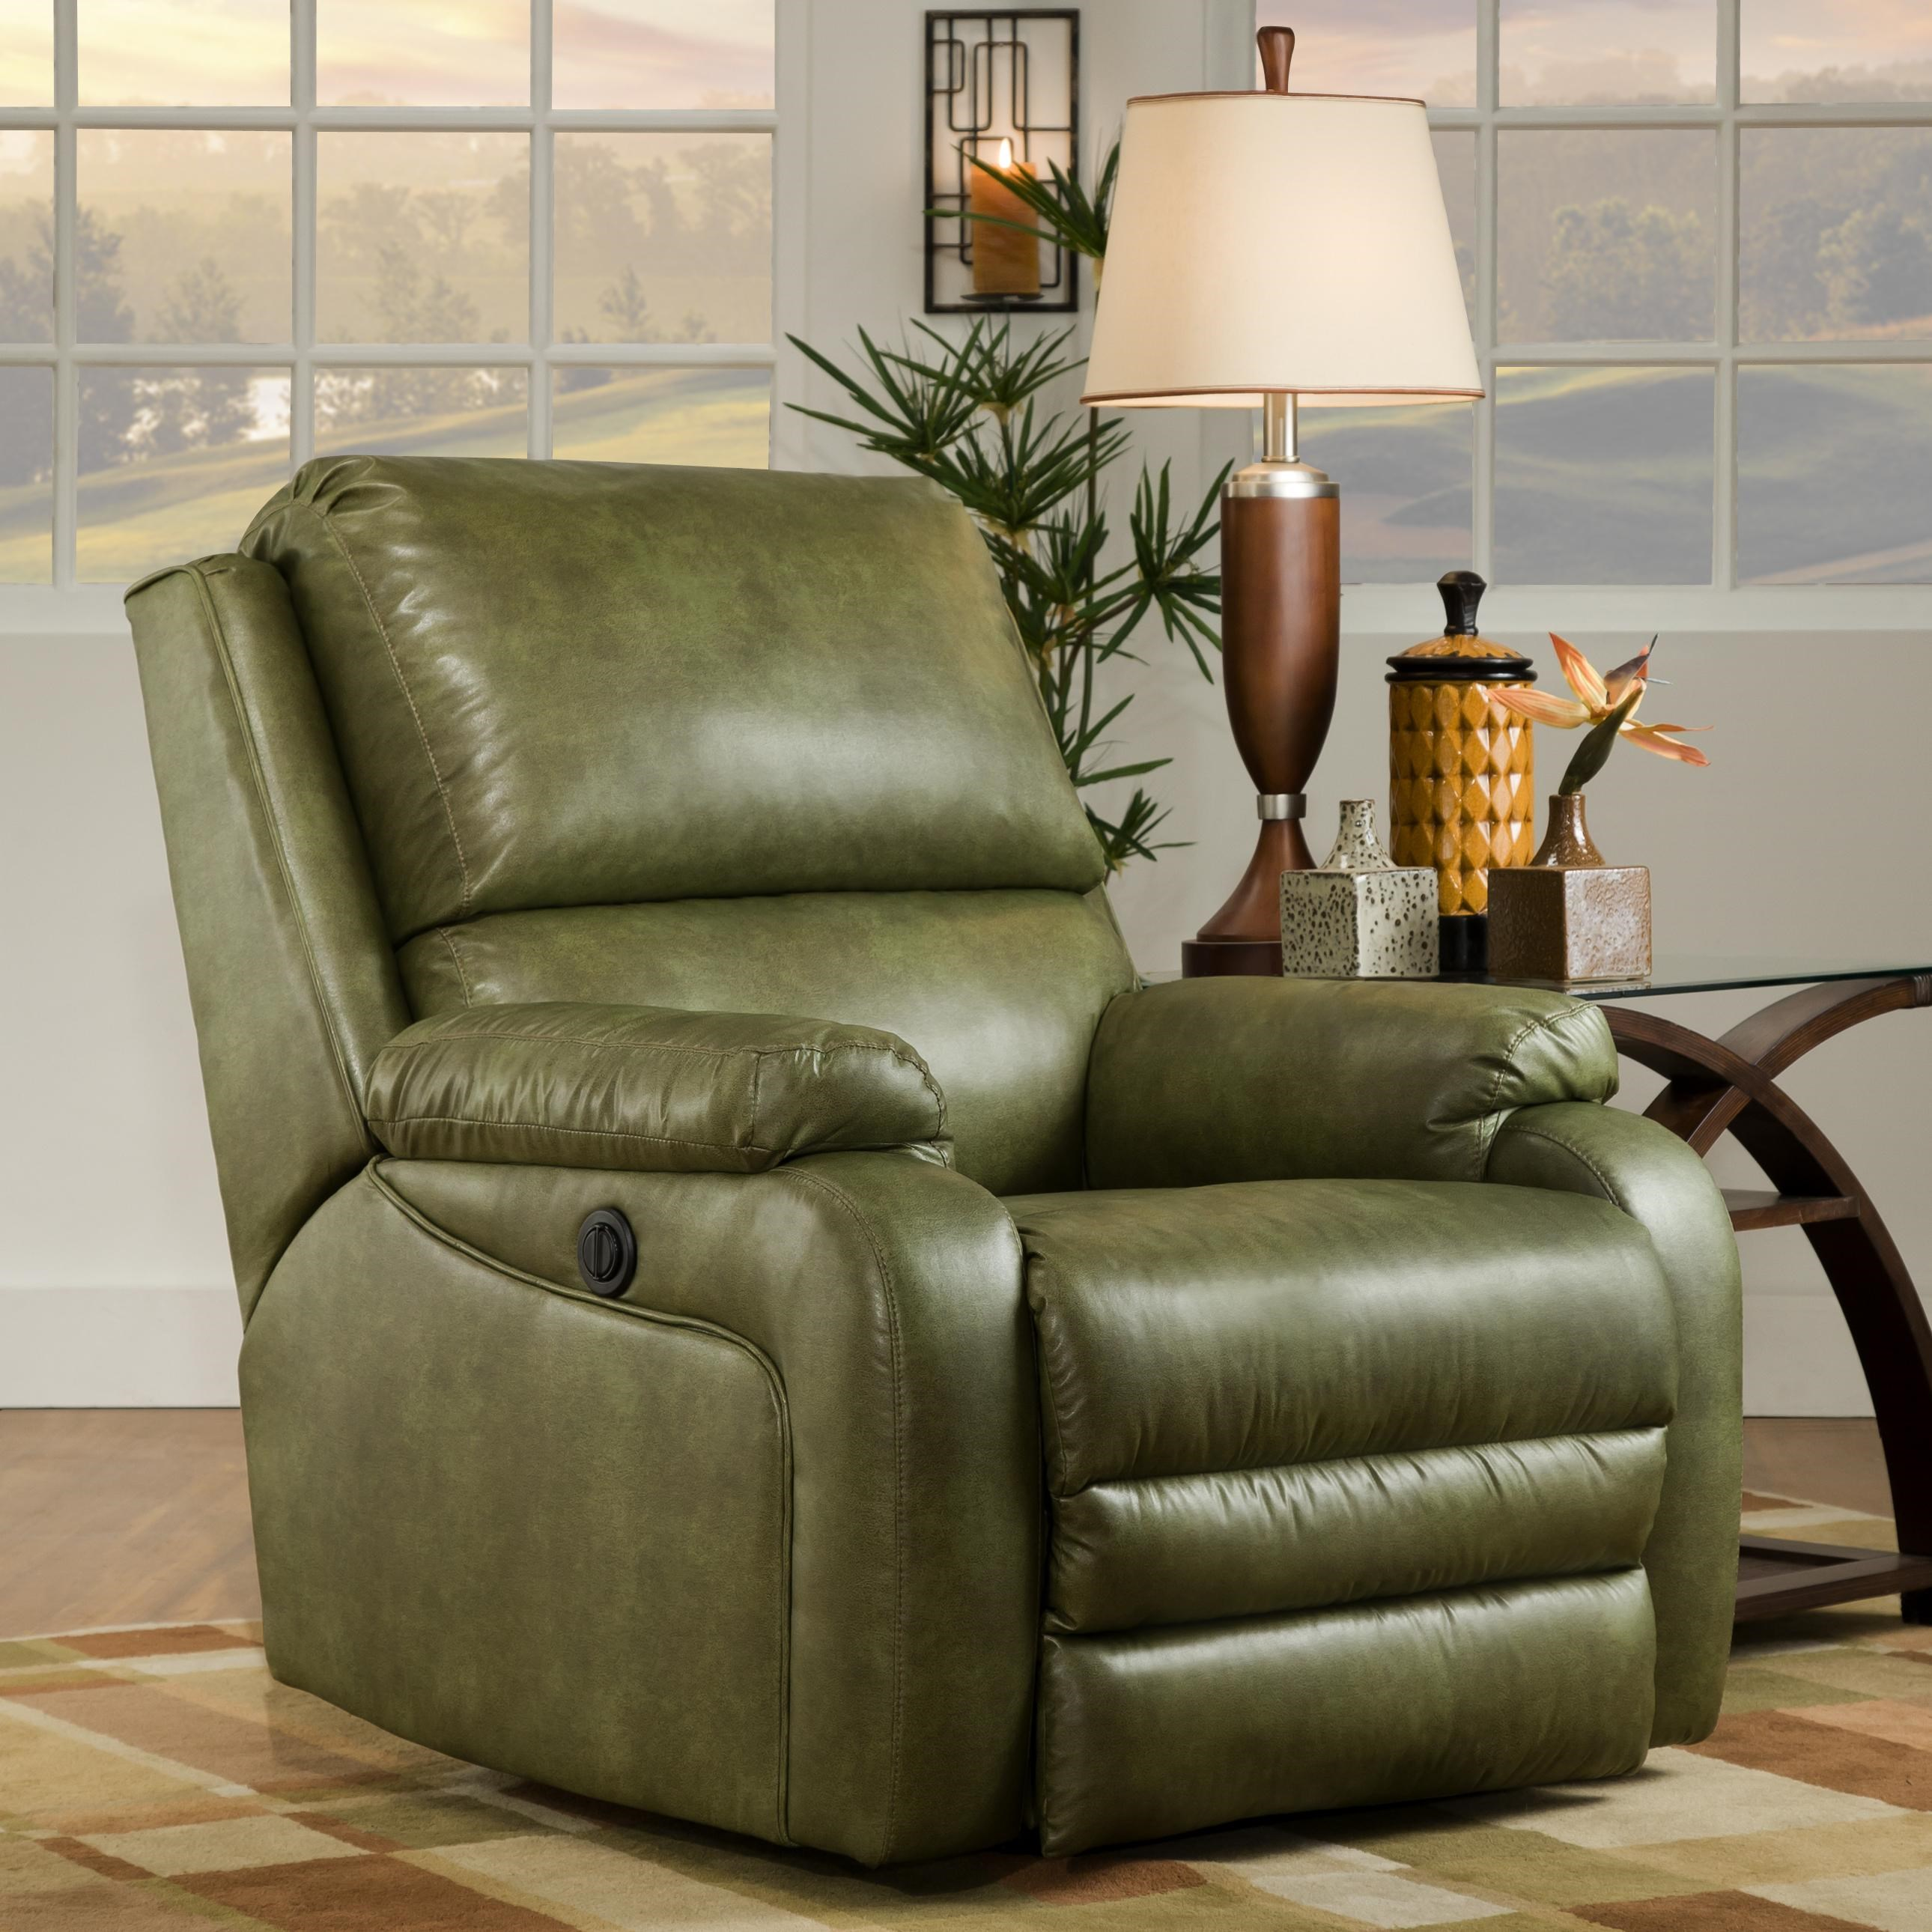 ... Recliner Shown May Not Represent Exact Features Indicated  sc 1 st  Johnny Janosik & Southern Motion Ovation Contemporary American Made Rocker Recliner ... islam-shia.org